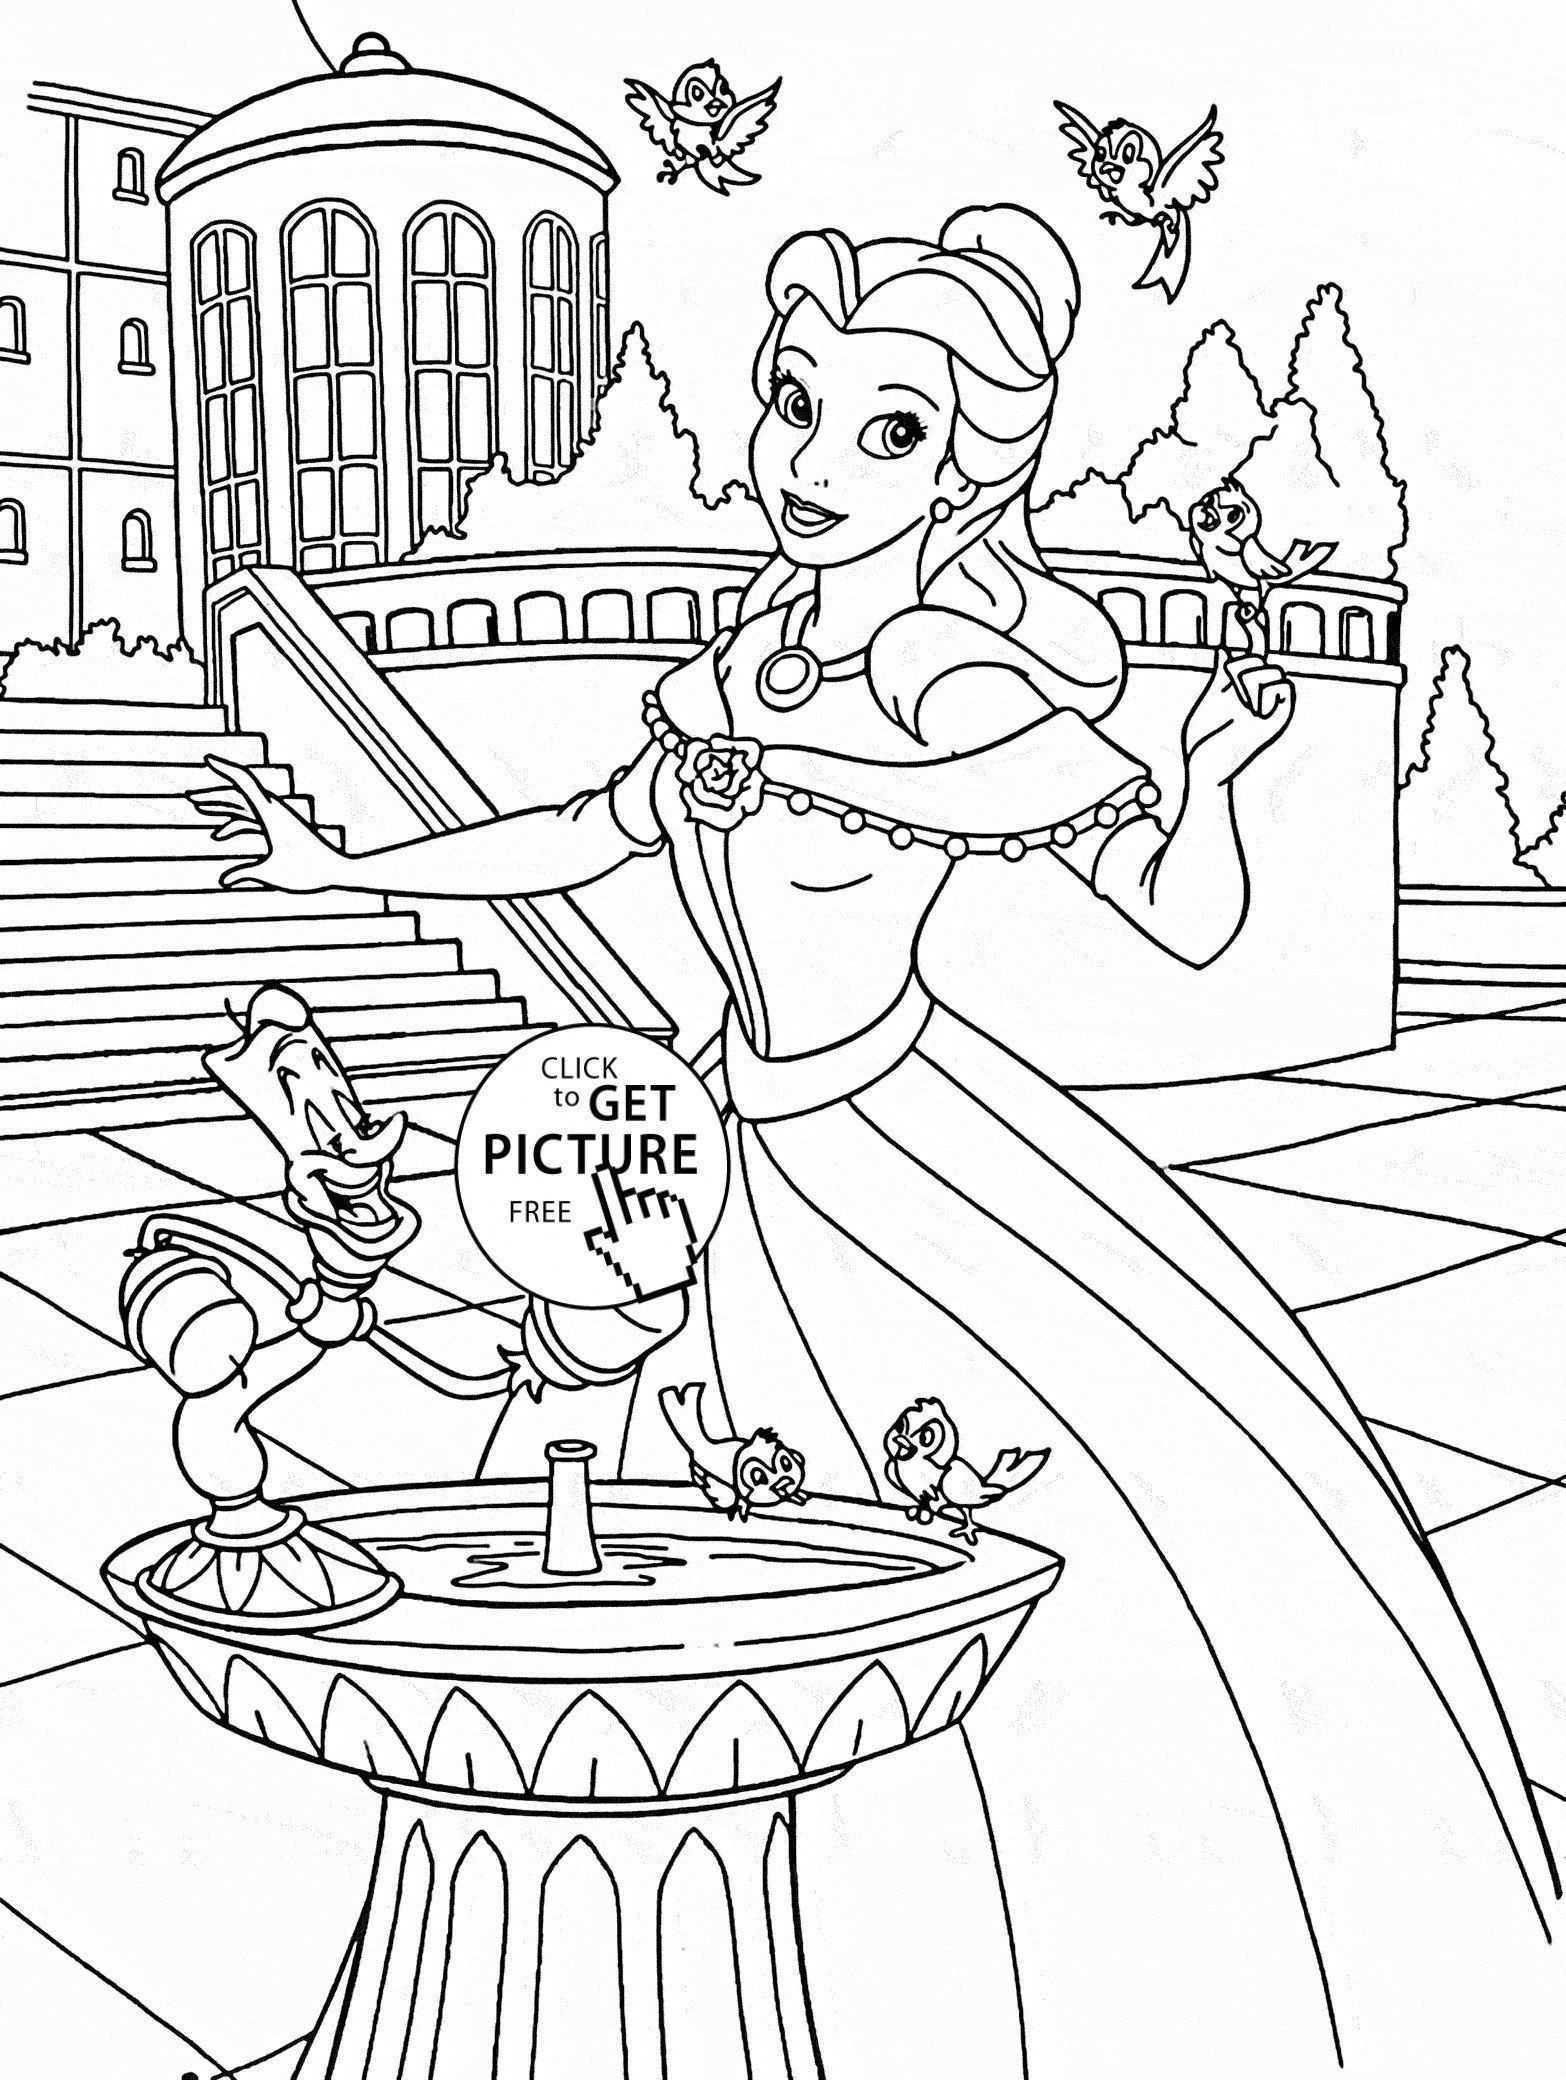 Mermaid Castle Coloring Pages Photos